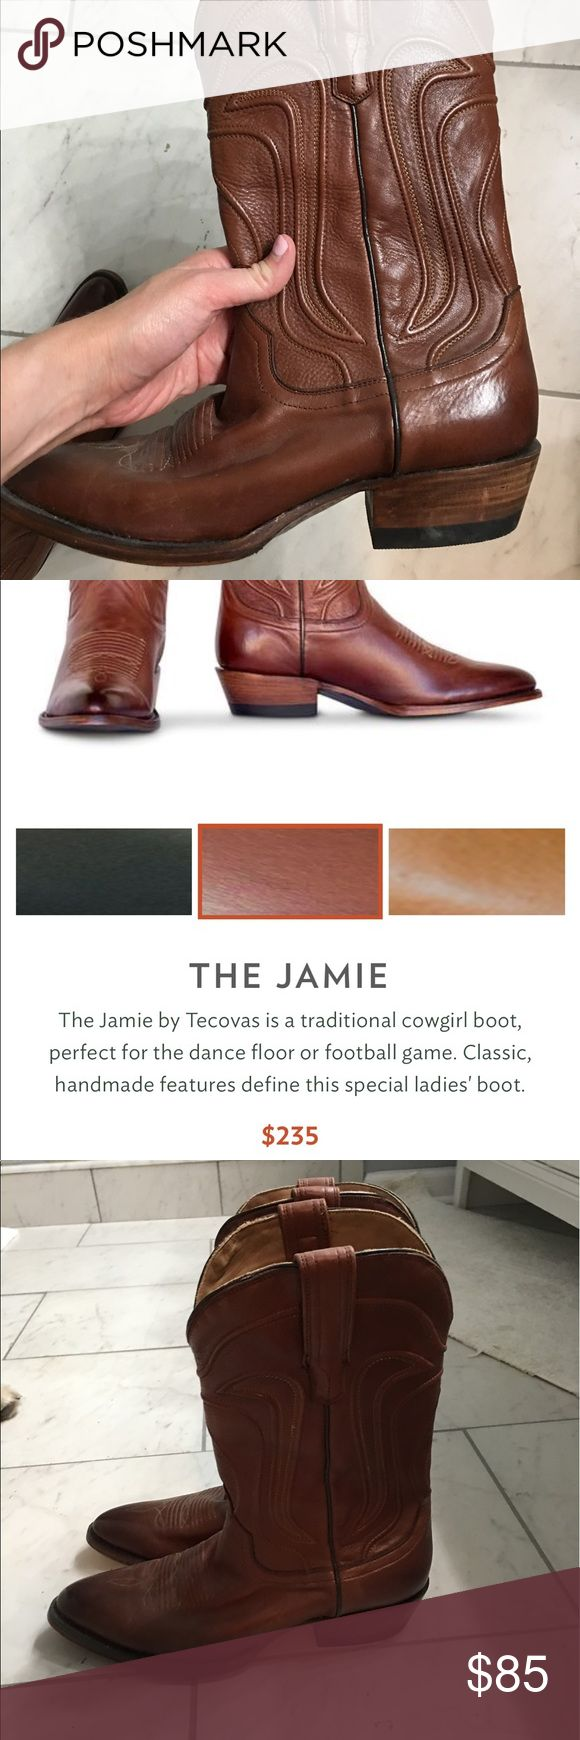 Tecovas Jamie Cow Boy Boot in Brown. Only worn a few times. In great condition. New Texas boot brand. Tecovas Shoes Heeled Boots